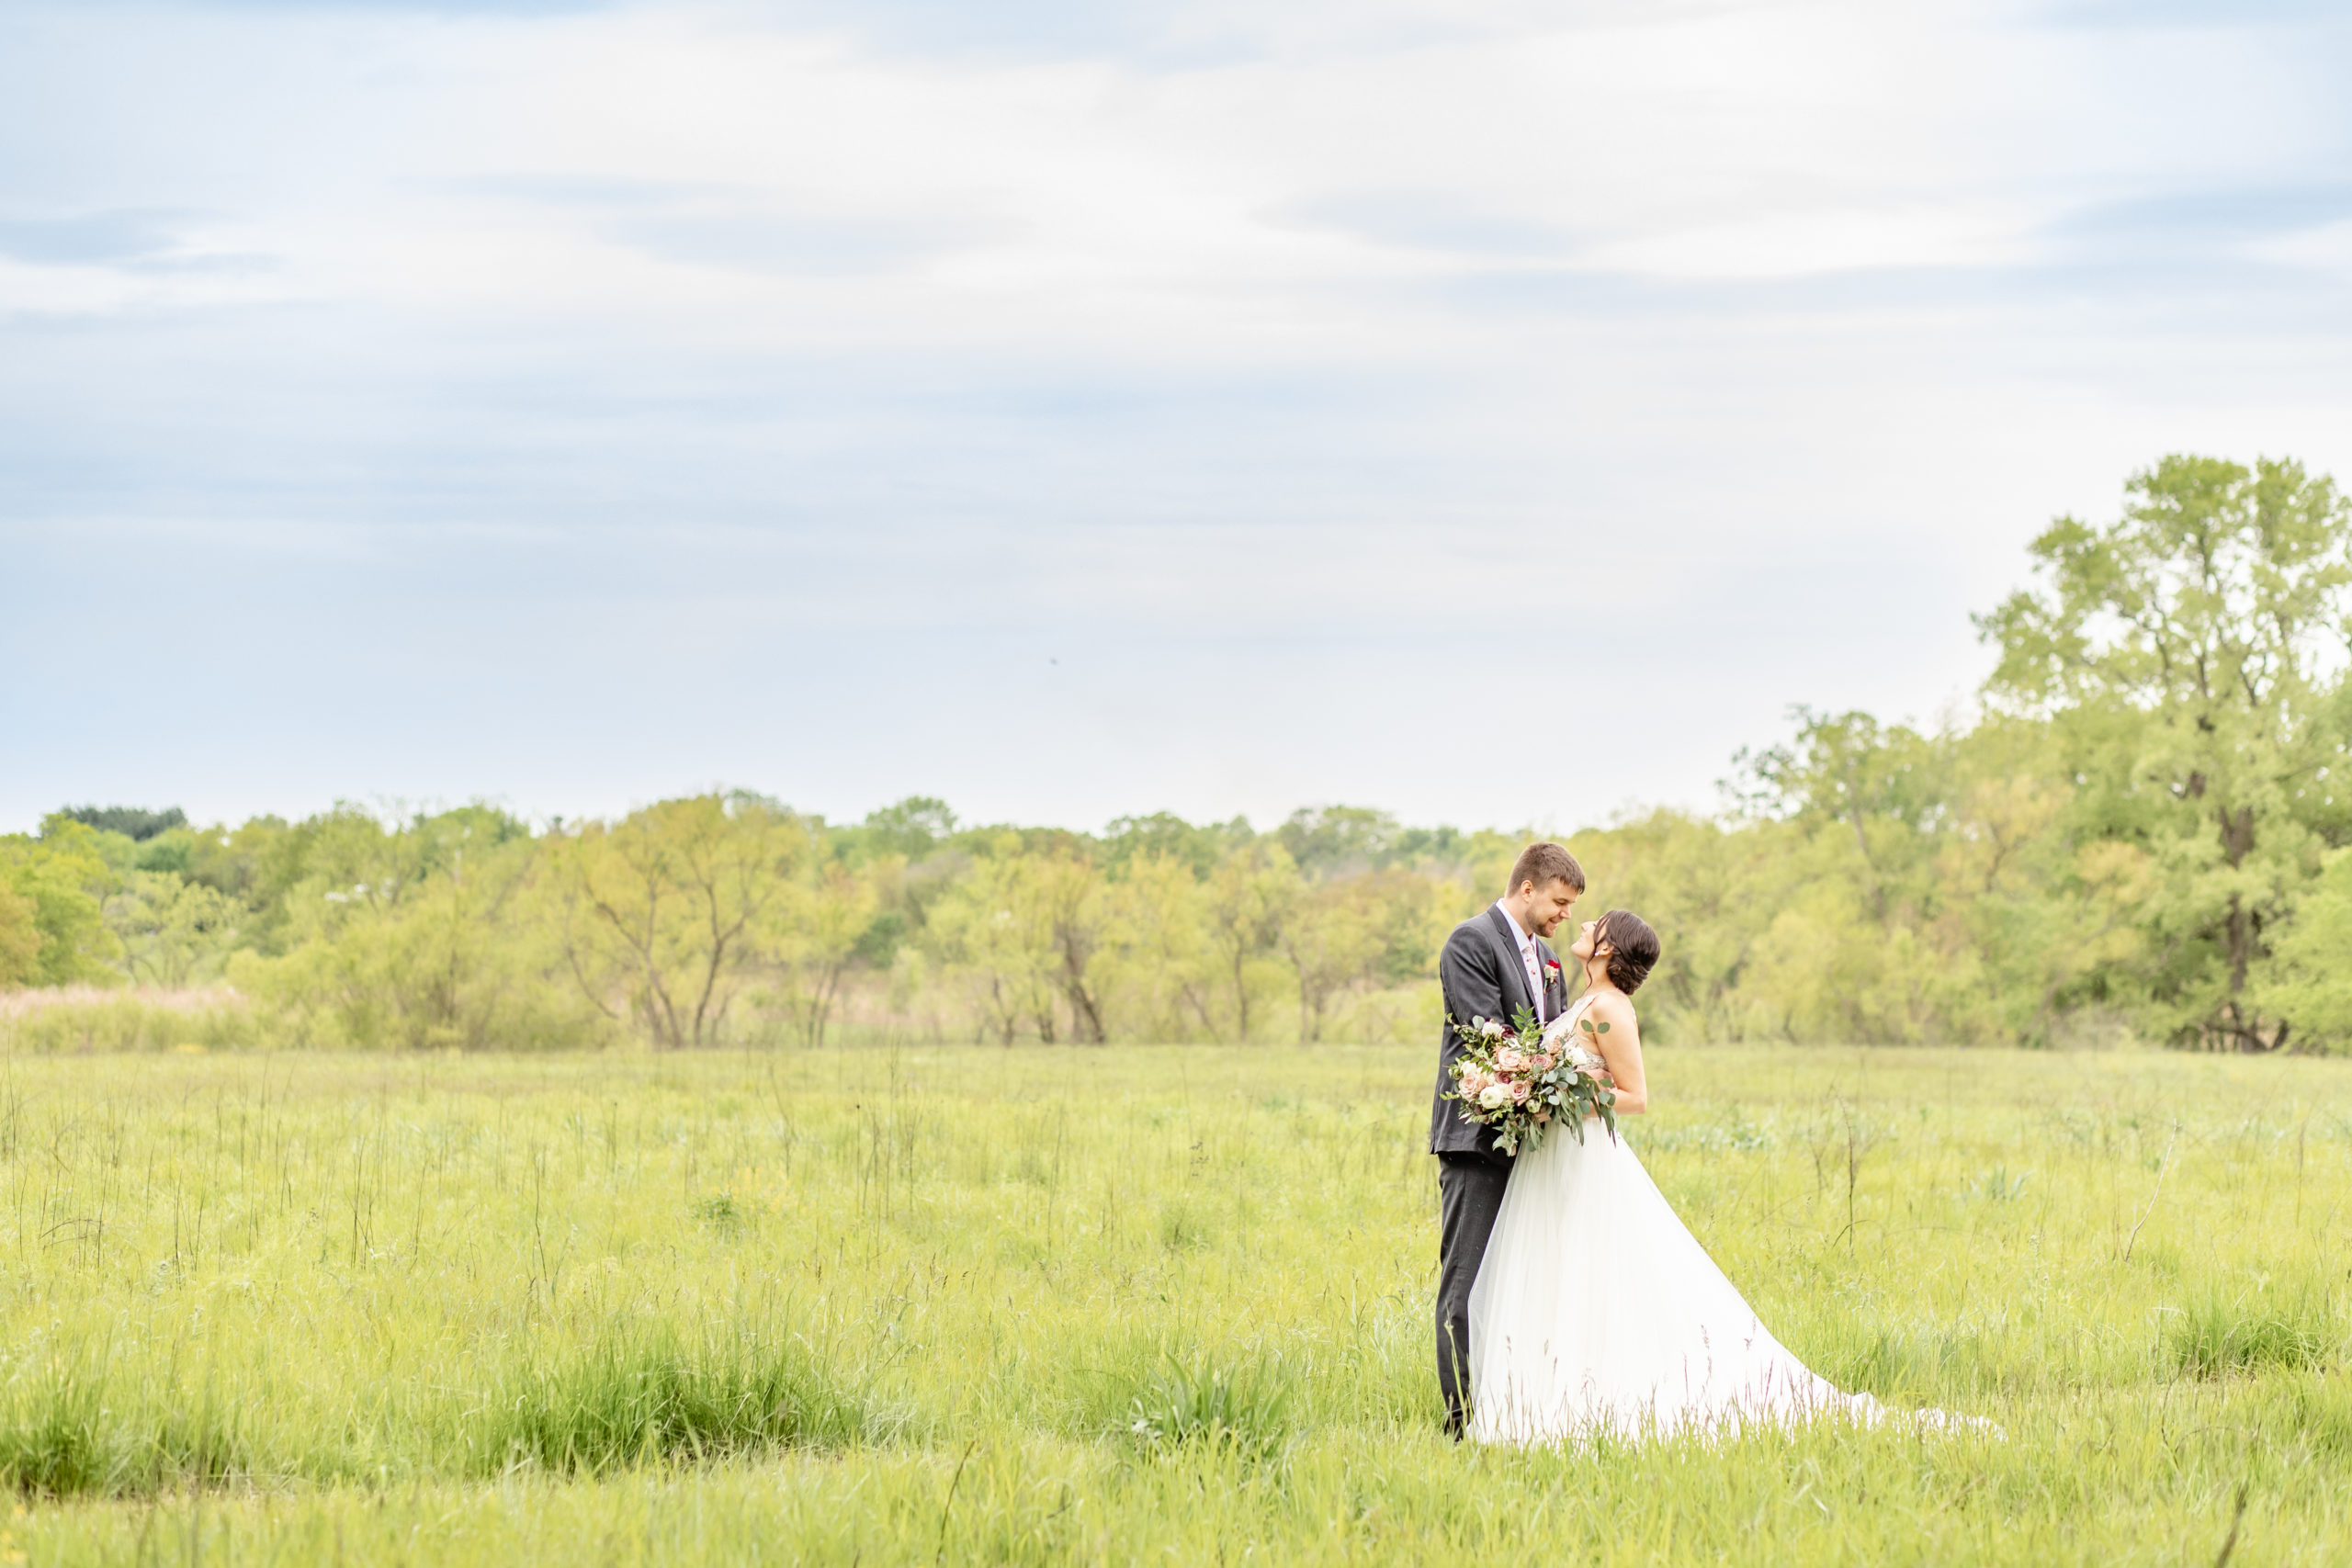 bride and groom, couple, wedding day, field, southern illinois photography